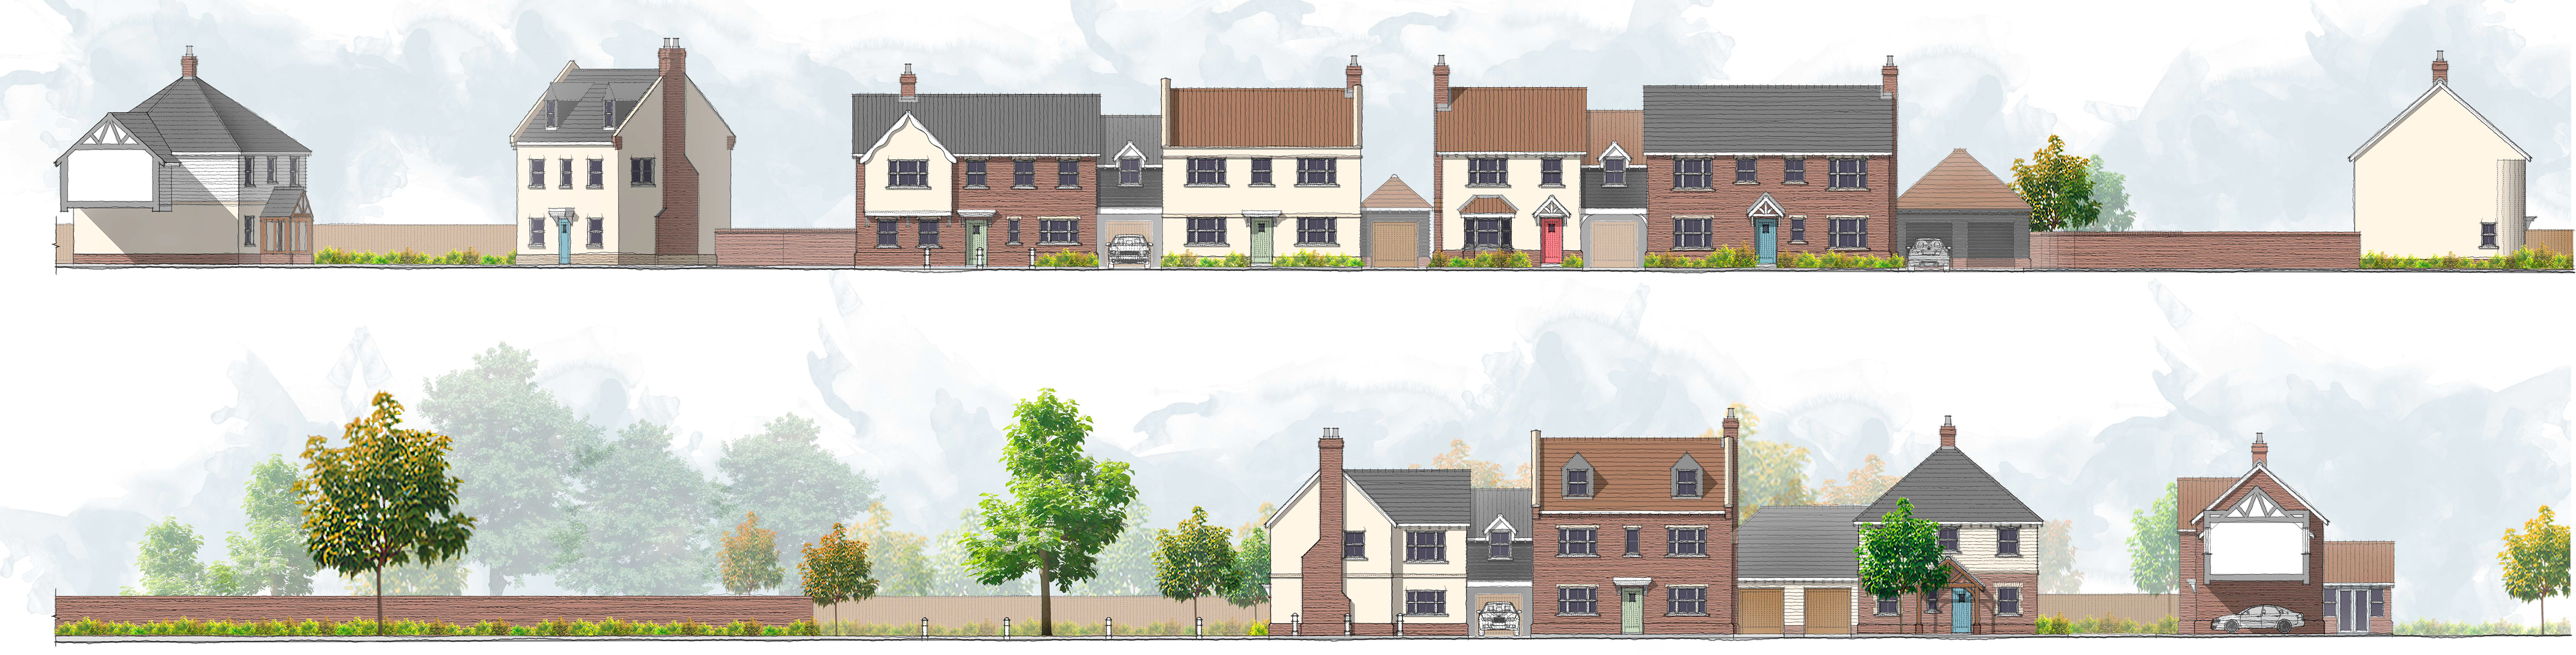 Property Development based in Braintree, Essex represented by  Joscelyne Chase Property ConsultantsEssex.